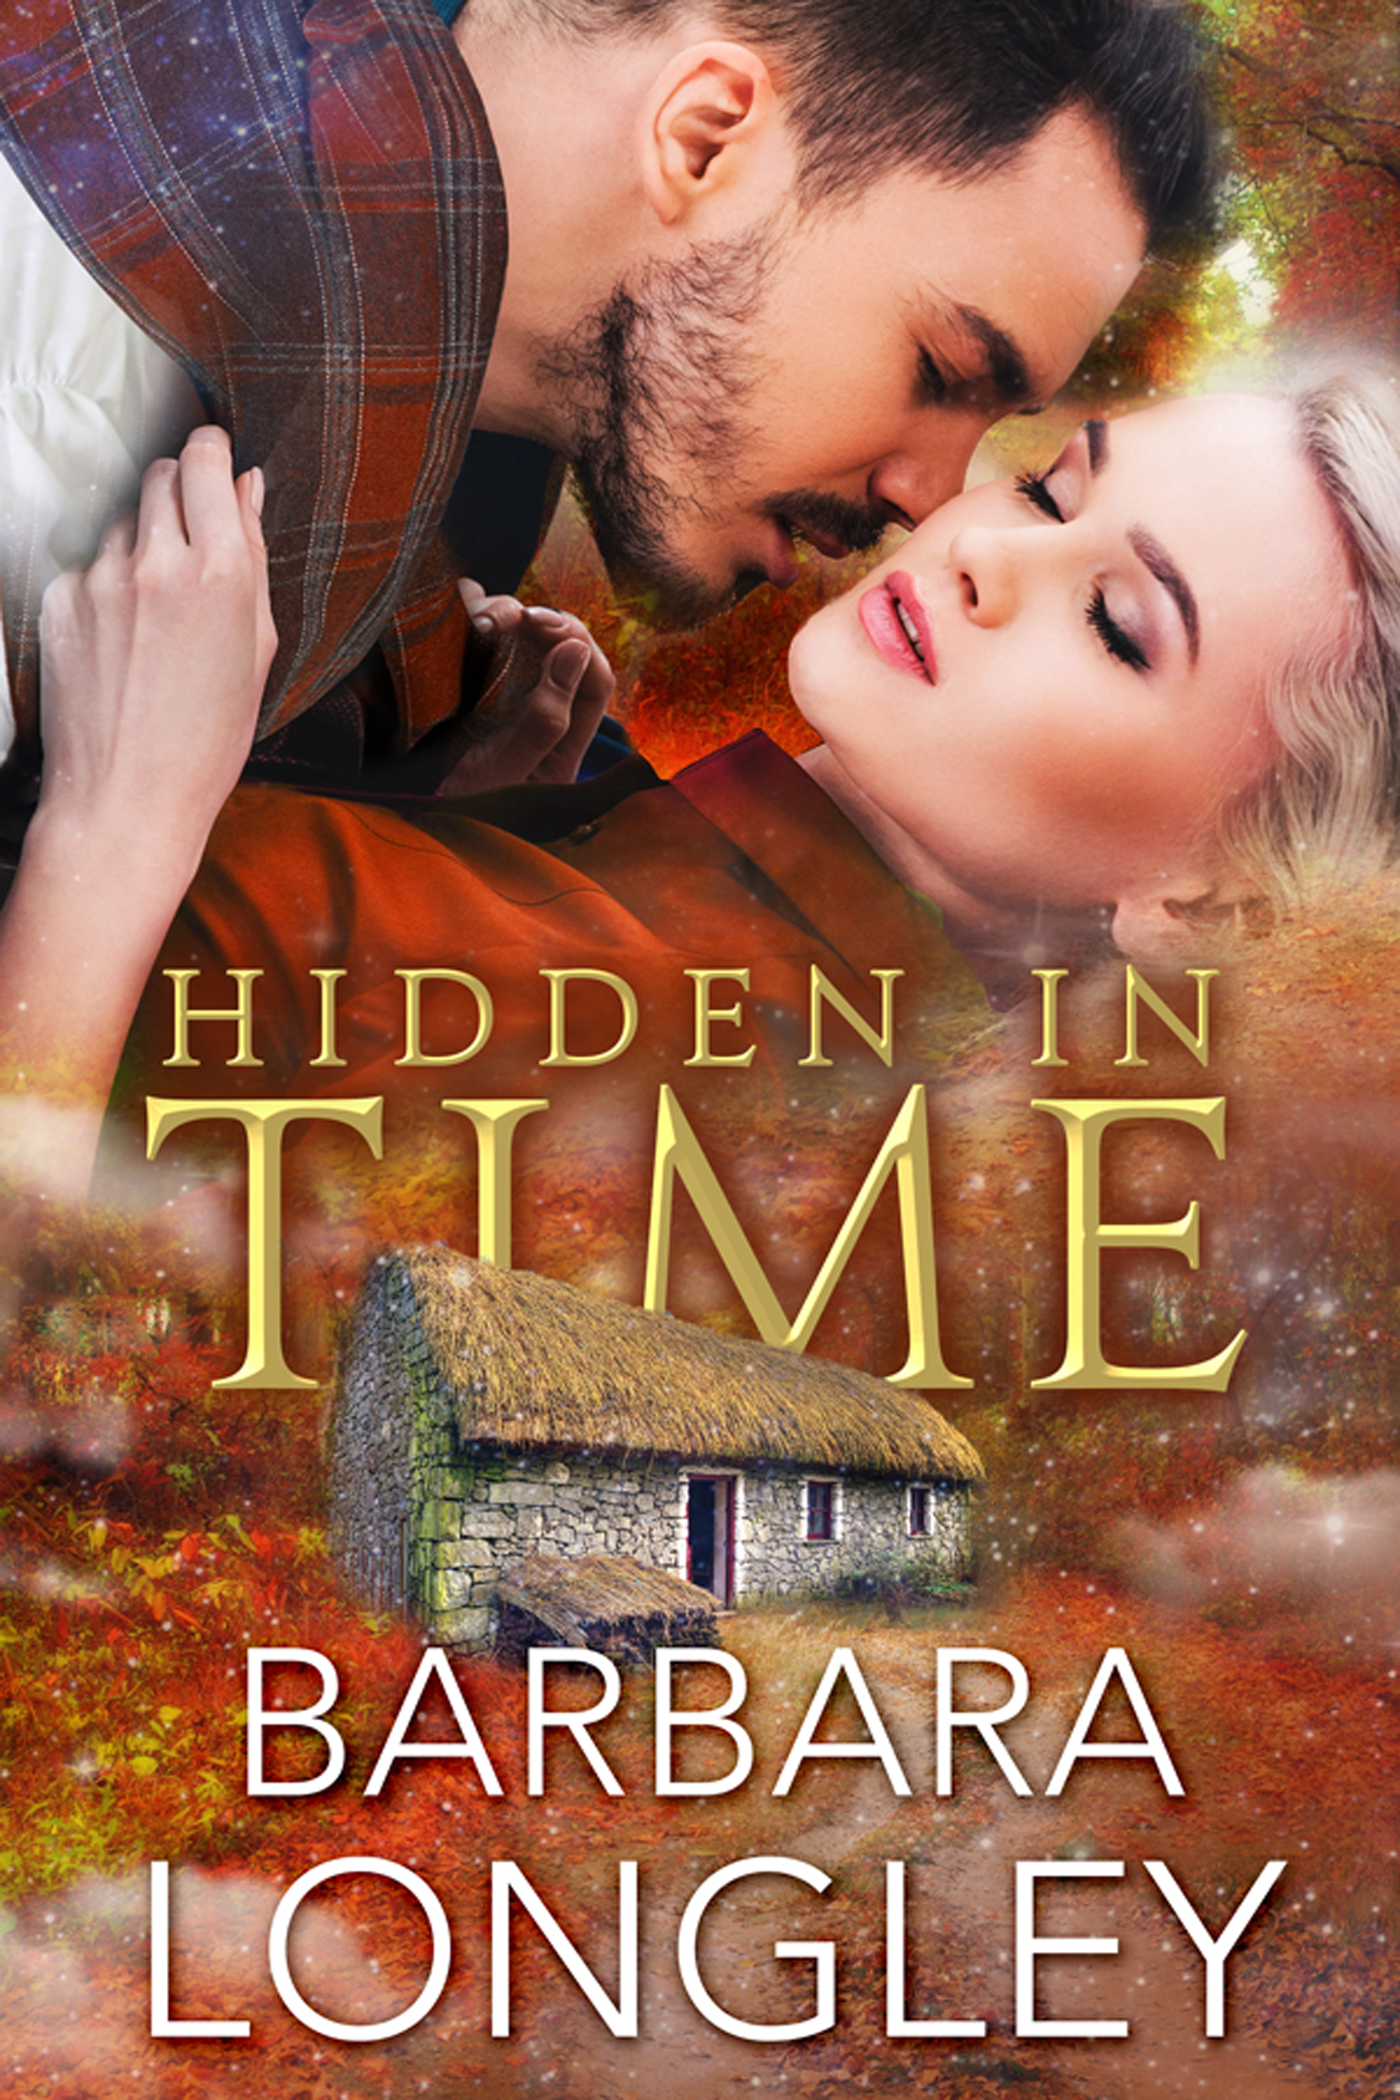 BarbaraLongley_HiddeninTime_1400